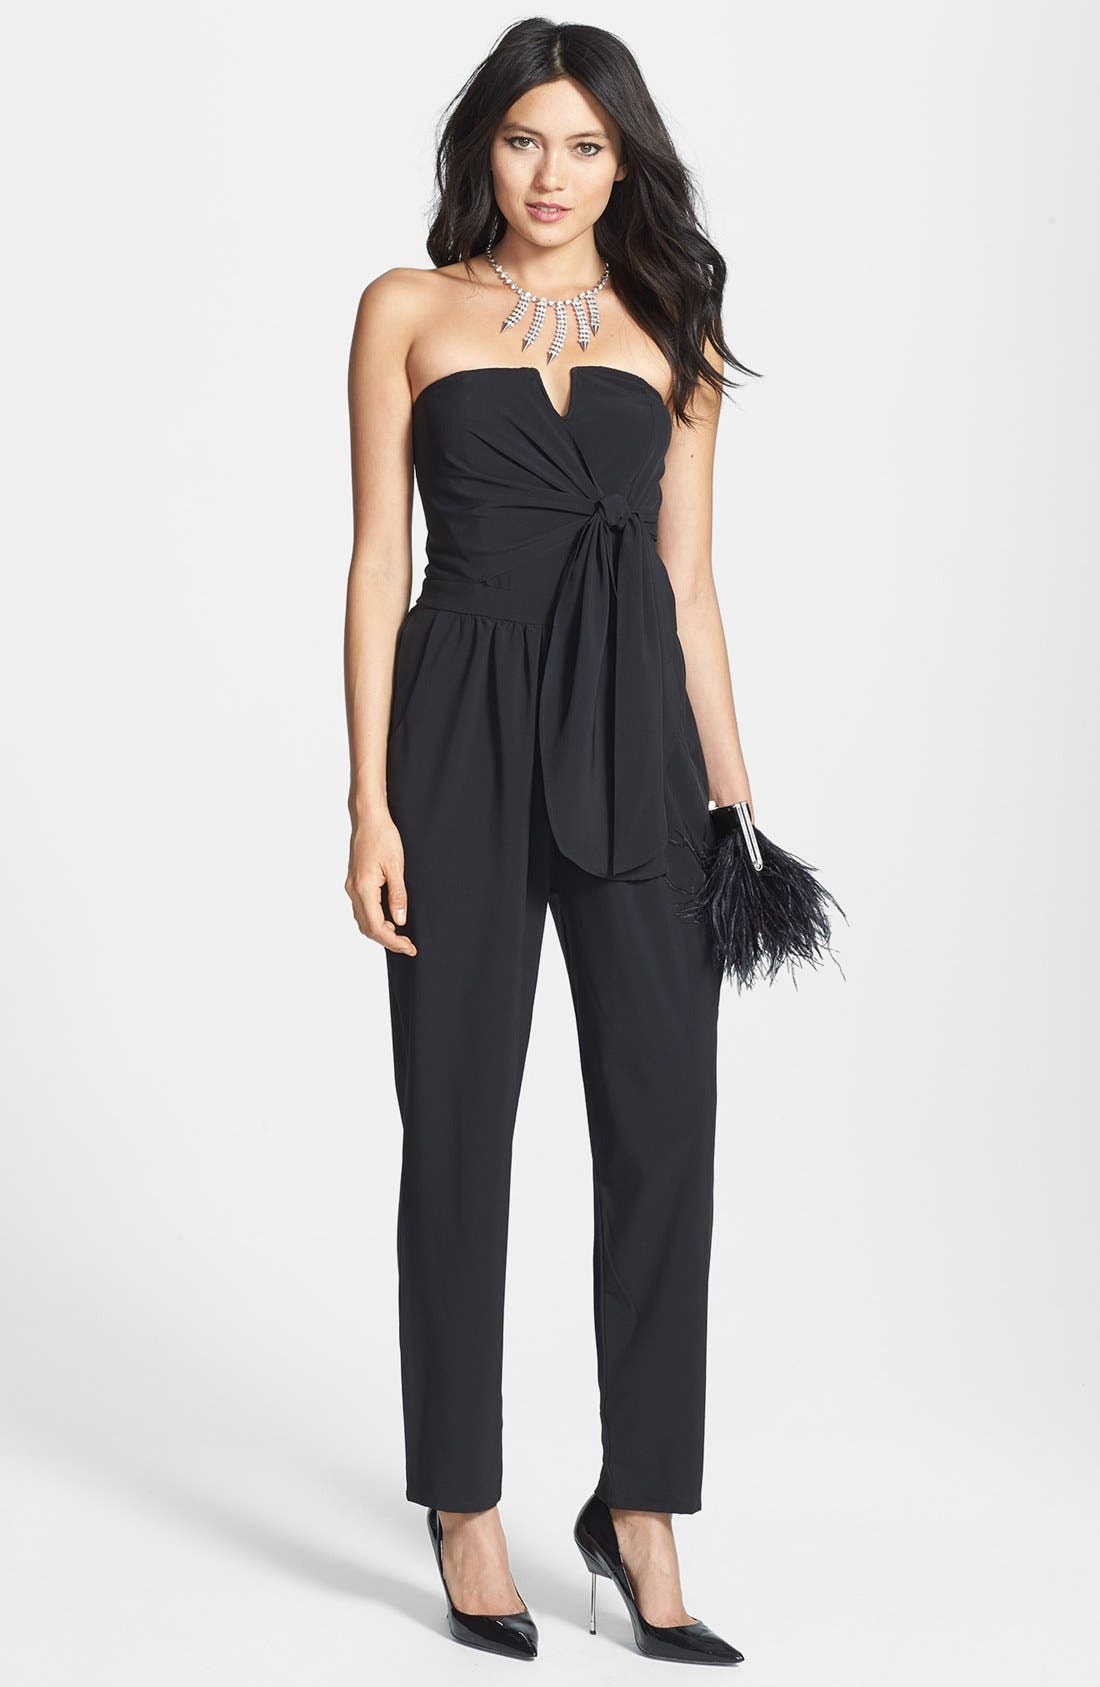 Main Image - Rules of Etiquette Tie Front Strapless Jumpsuit